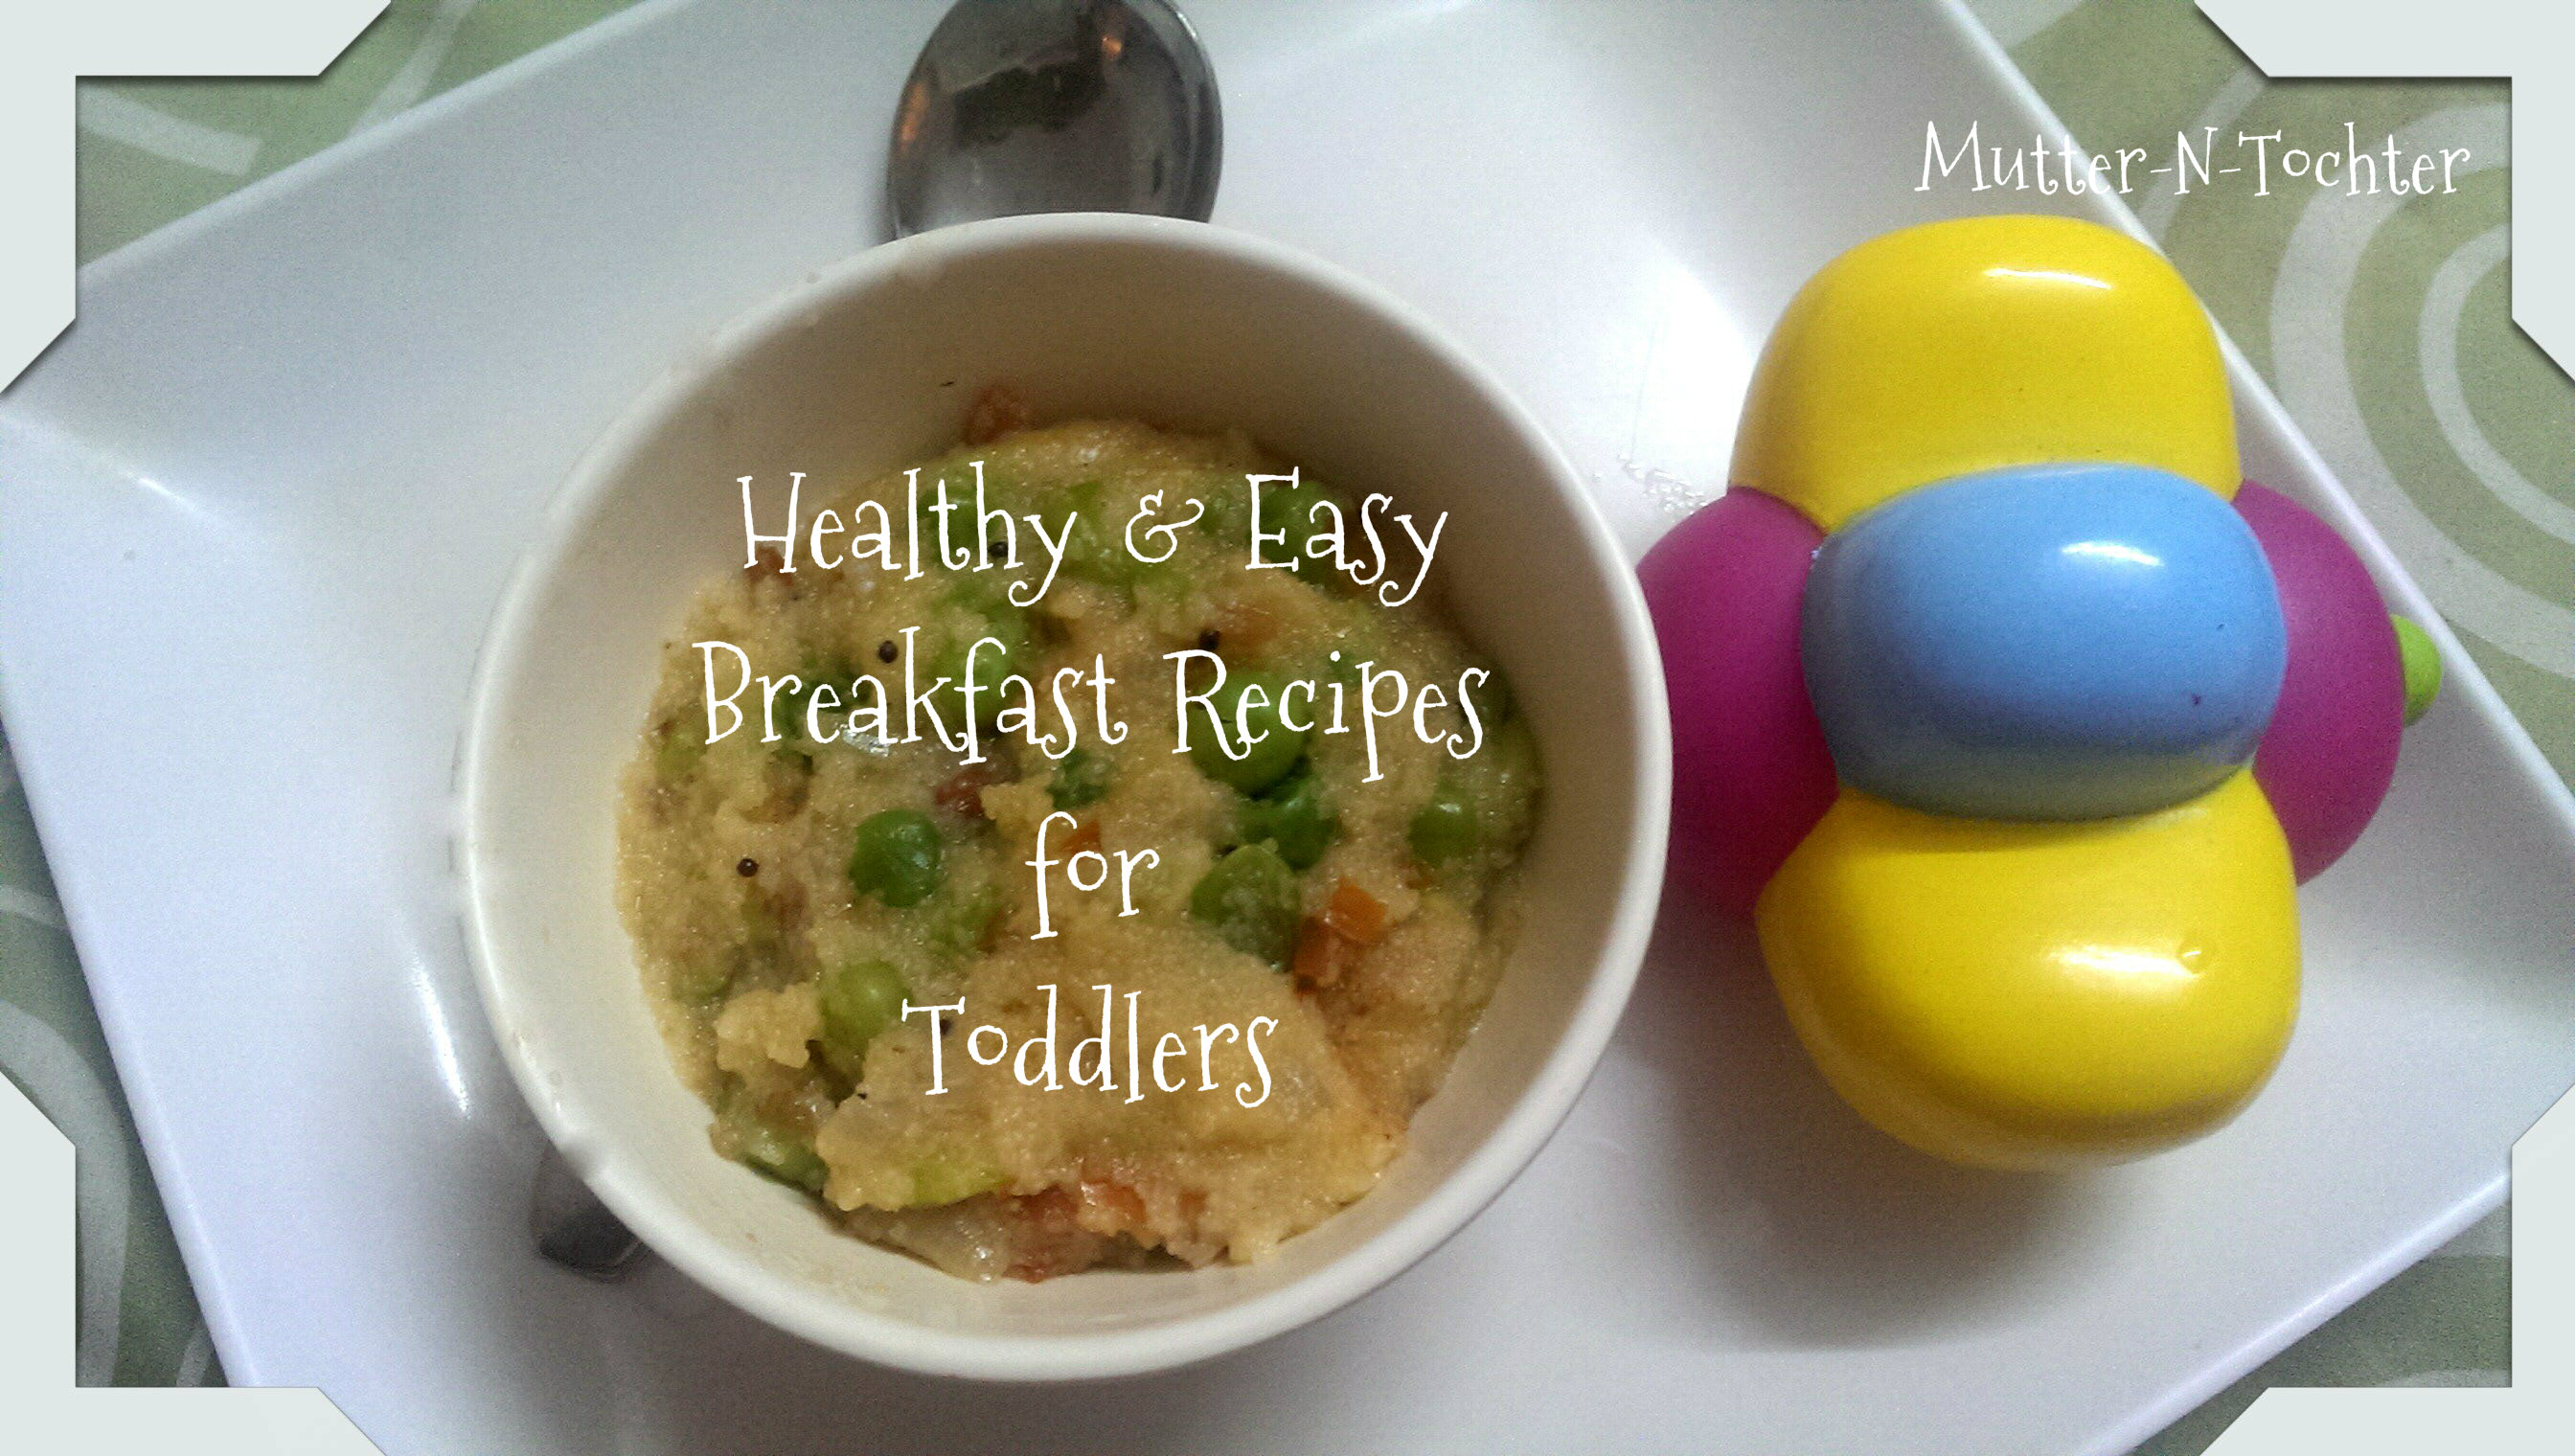 Easy peasy healthy breakfast recipes for one year olds toddlers breakfast recipes for one year olds forumfinder Choice Image